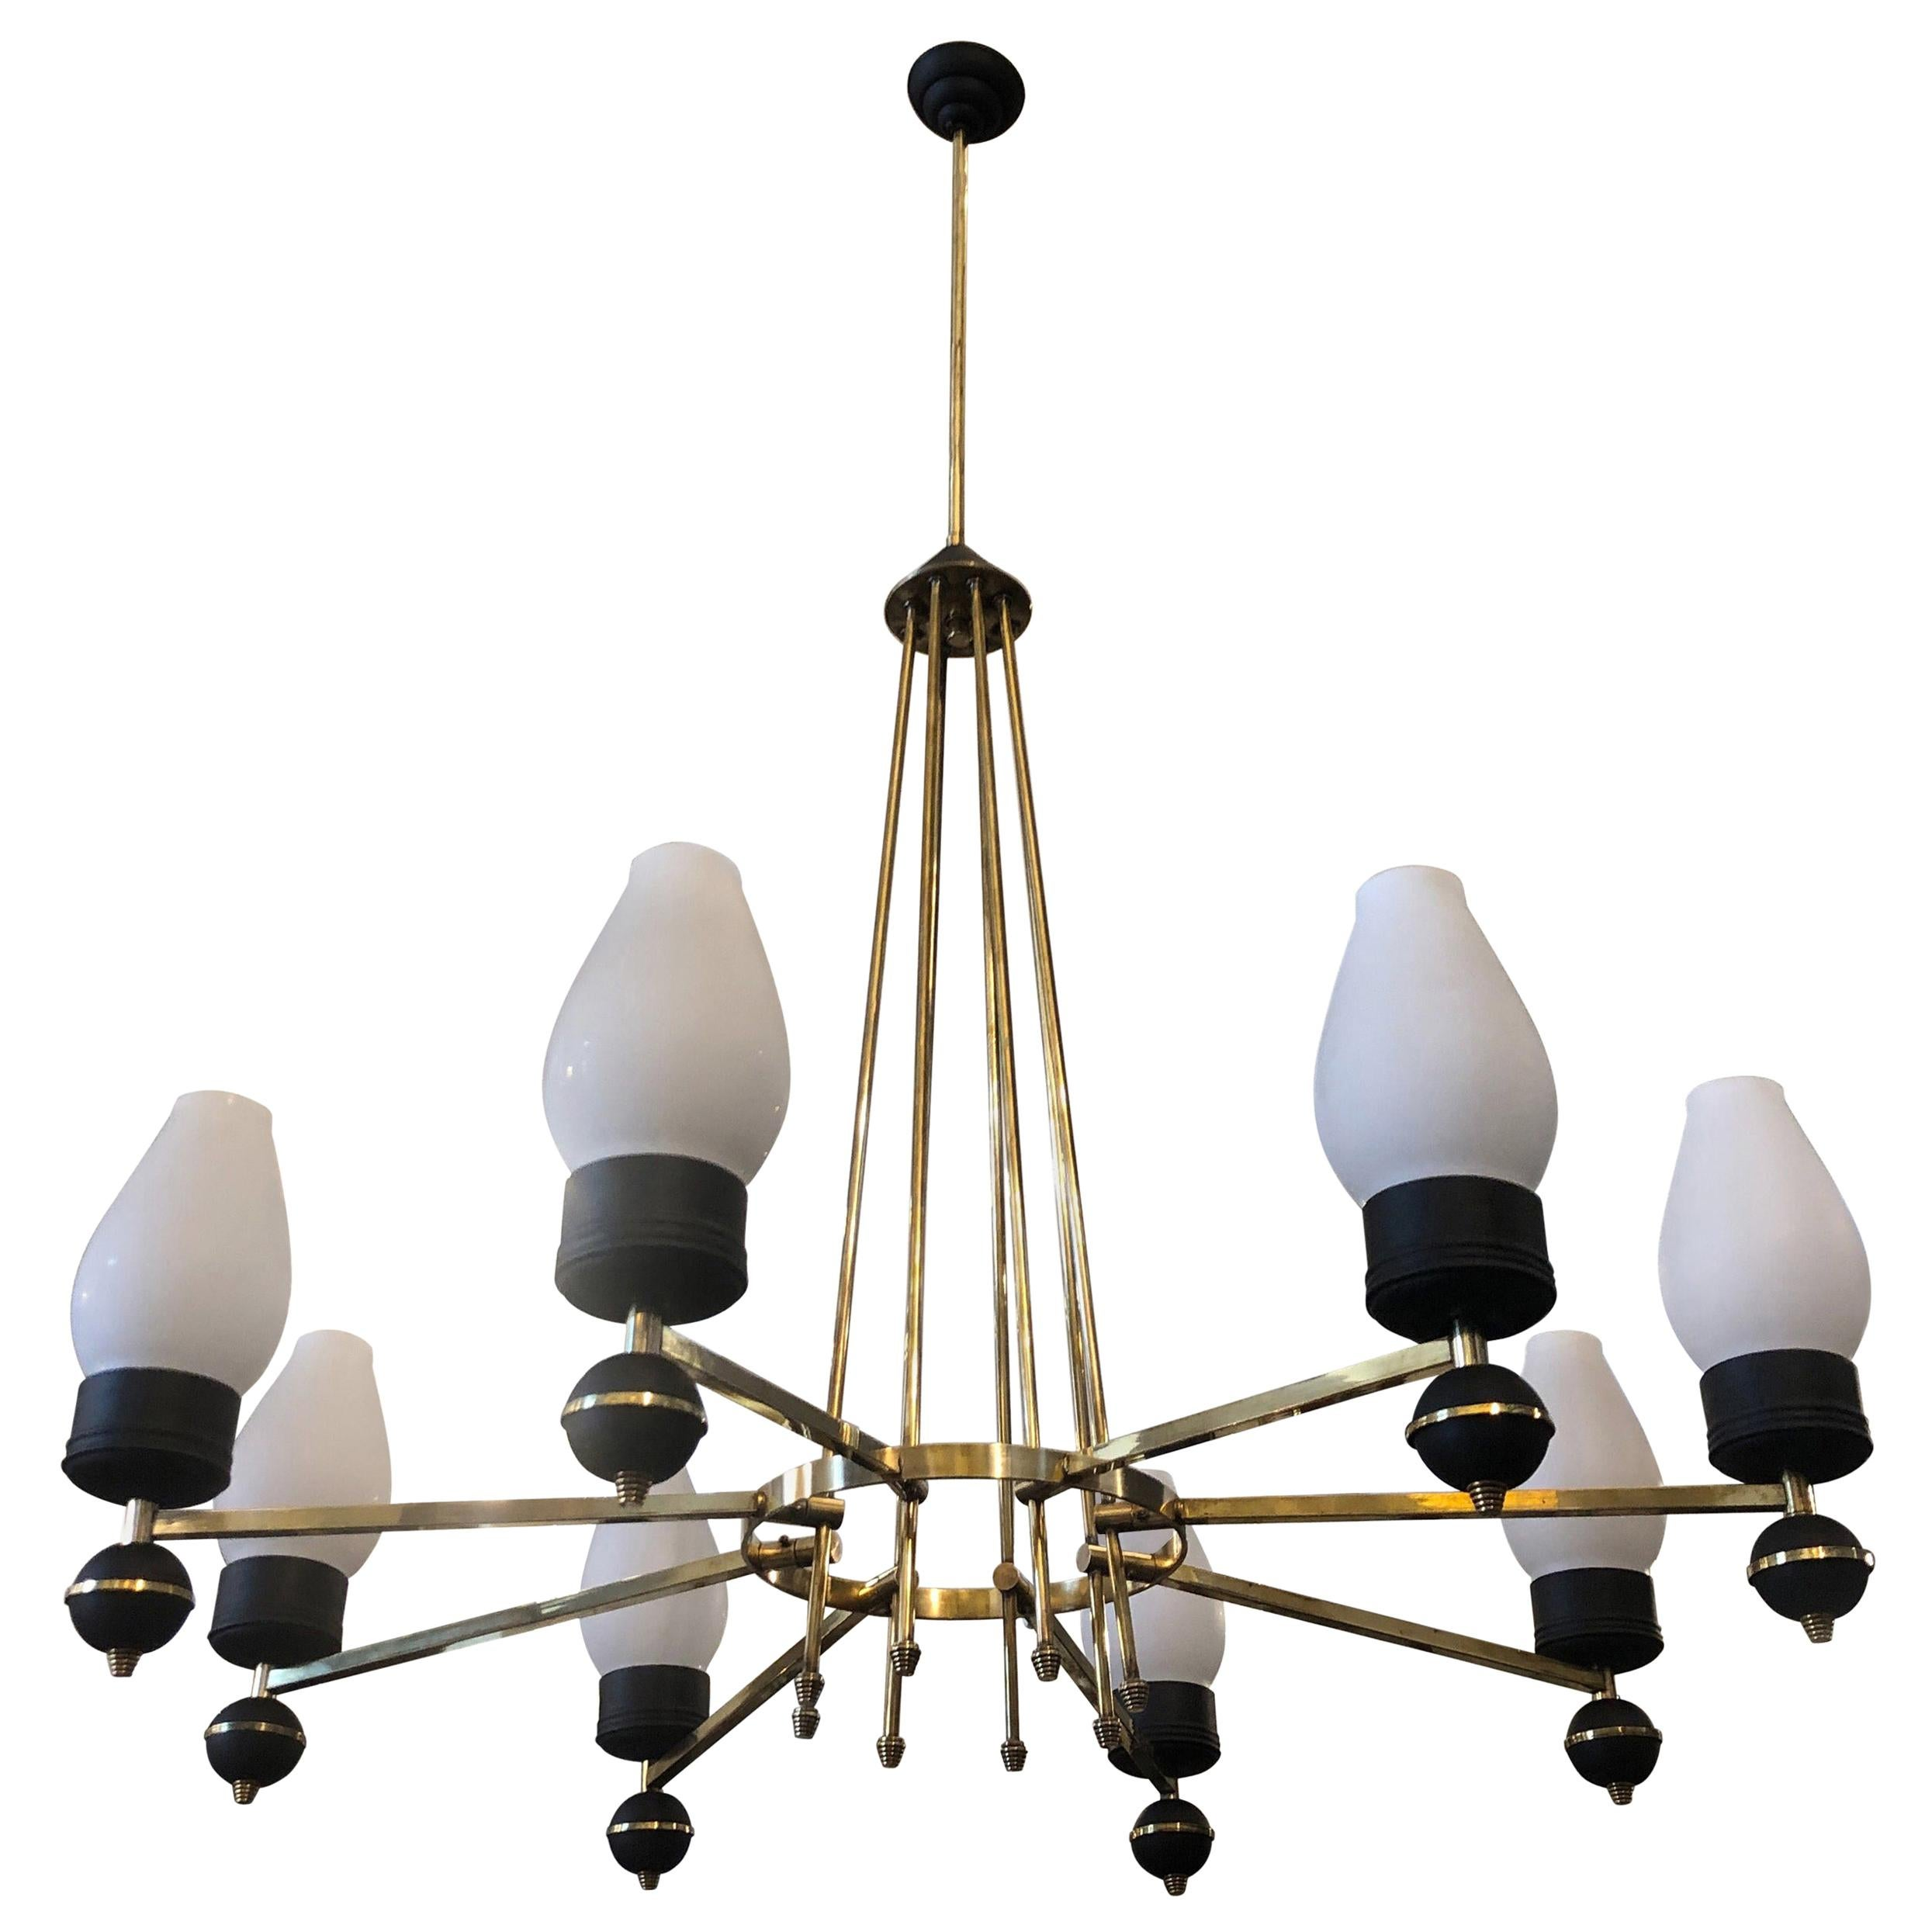 Mid-Century Modern Brass and Black Metal Chandelier in the Manner of Giò Ponti